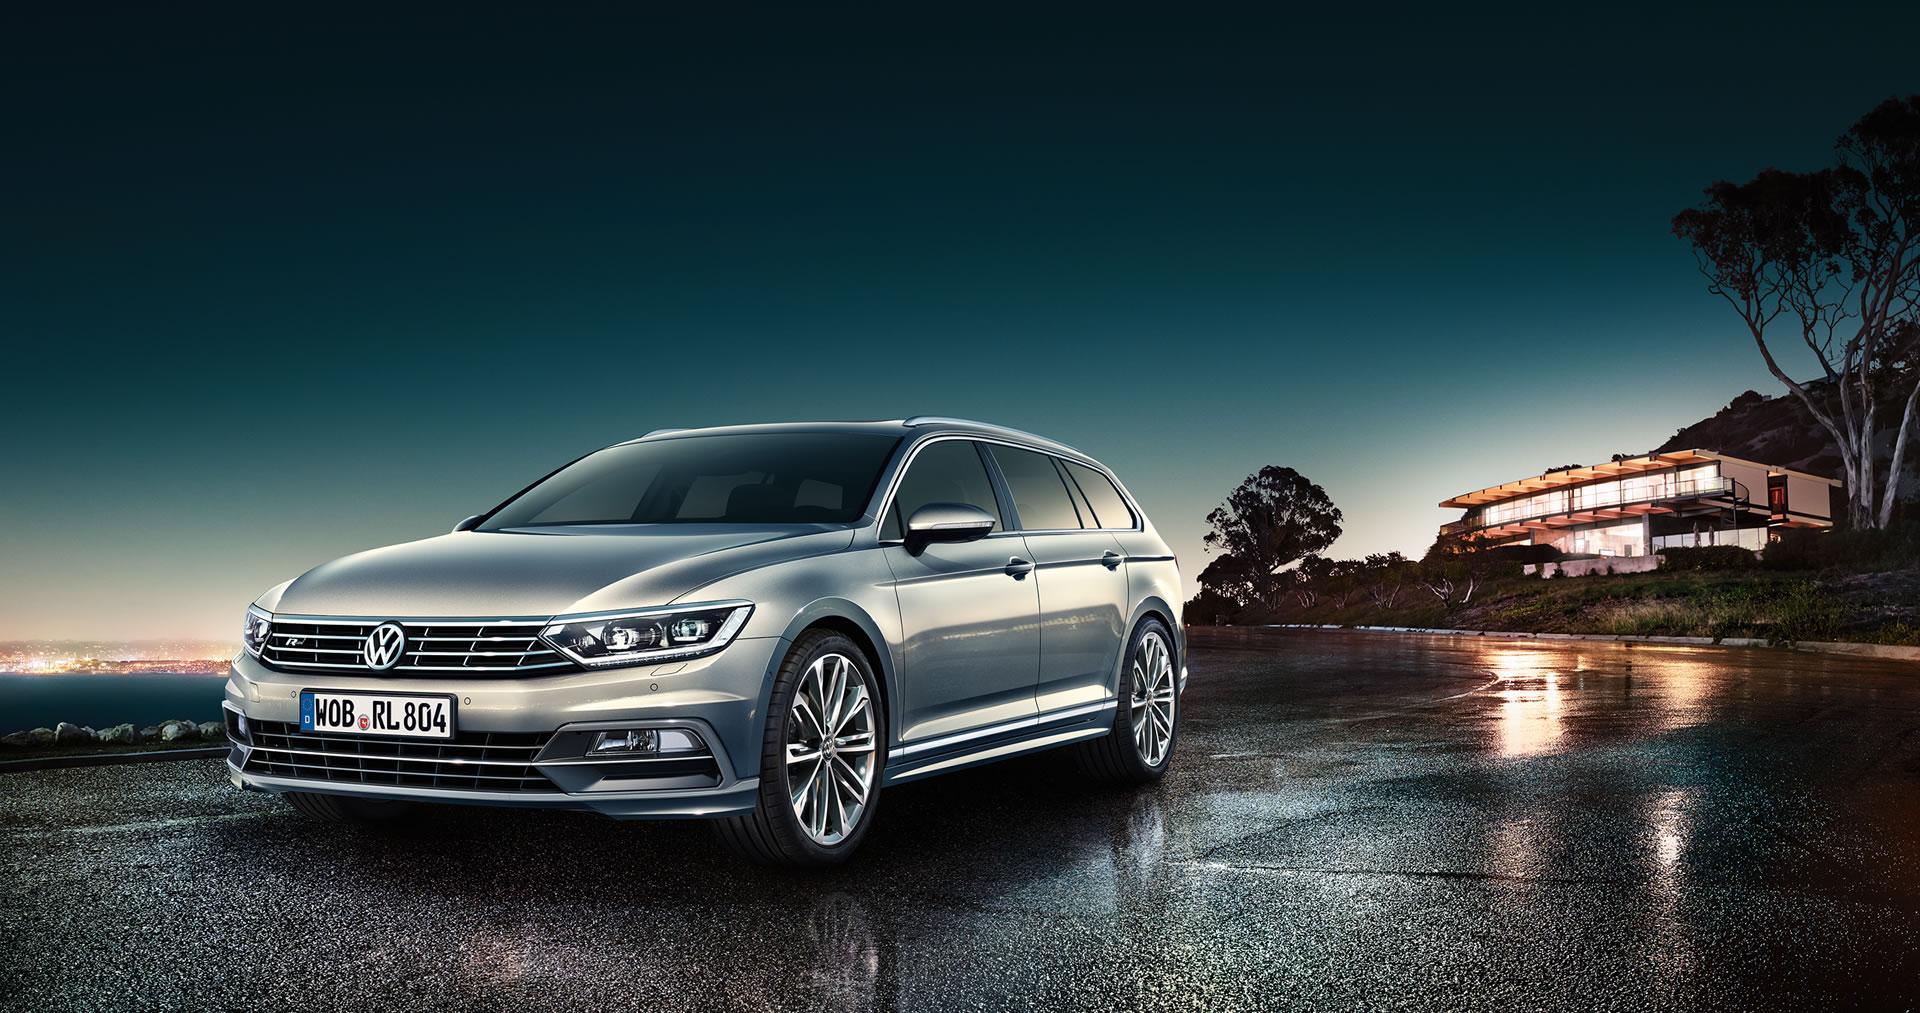 All New Volkswagen Passat Saloon and Estate UK Pricing Announced